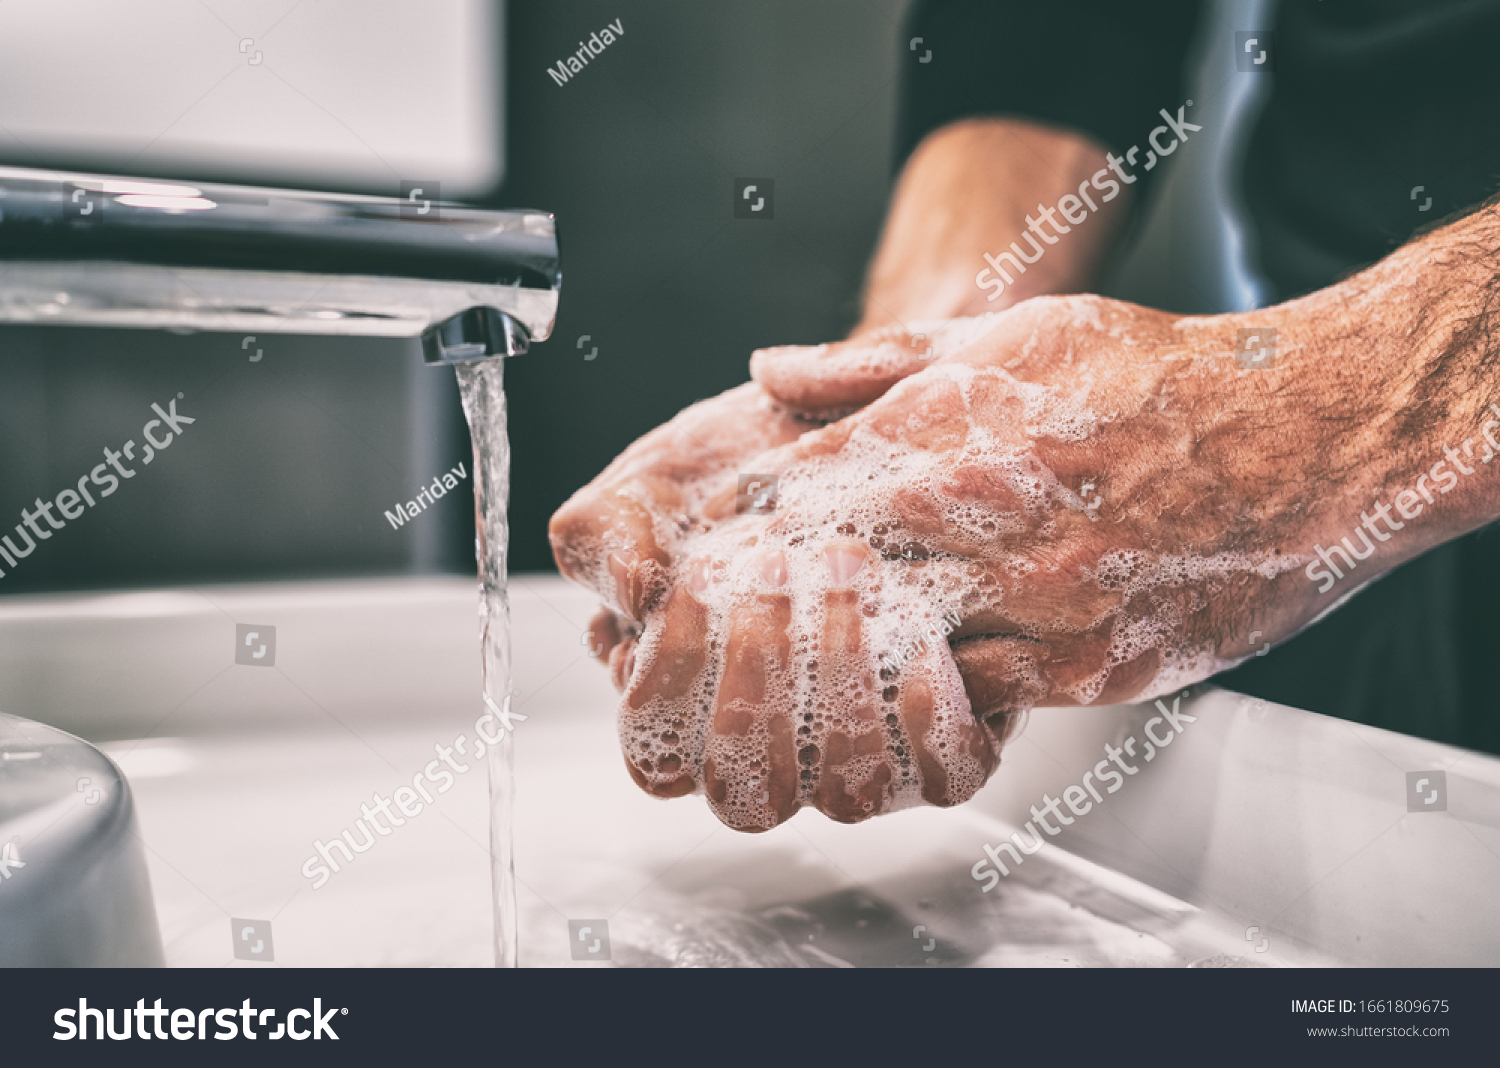 Coronavirus pandemic prevention wash hands with soap warm water and , rubbing nails and fingers washing frequently or using hand sanitizer gel. #1661809675